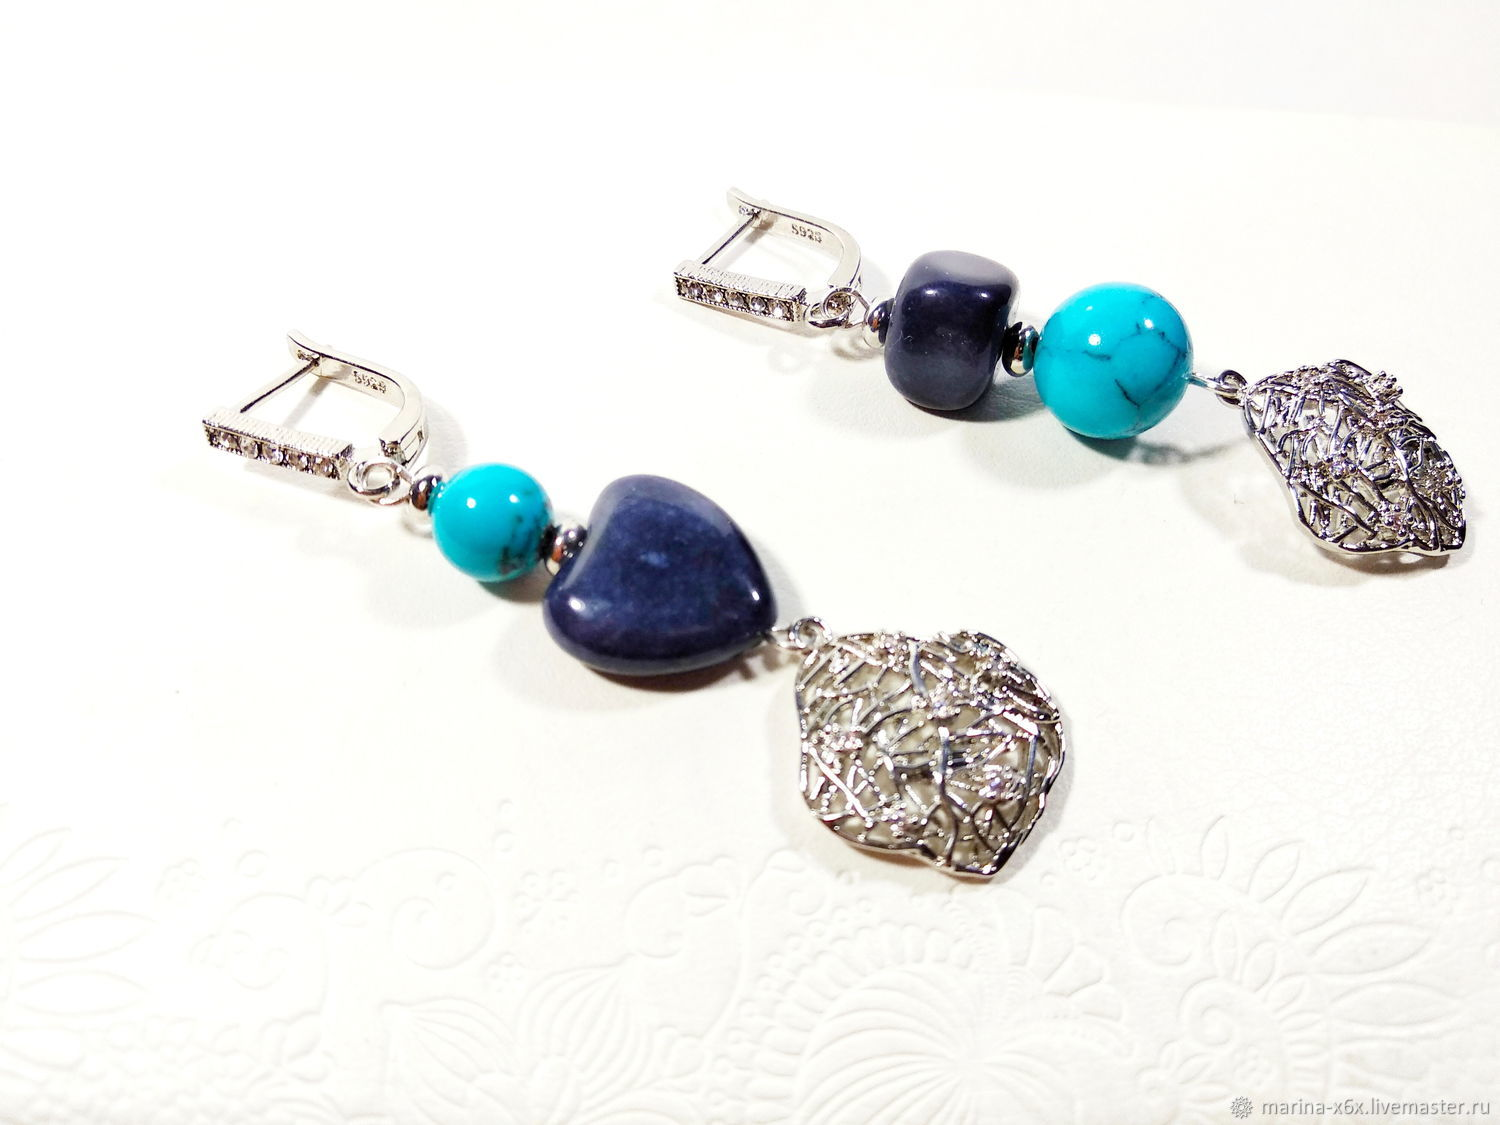 Earrings with natural stones, Earrings, Moscow,  Фото №1